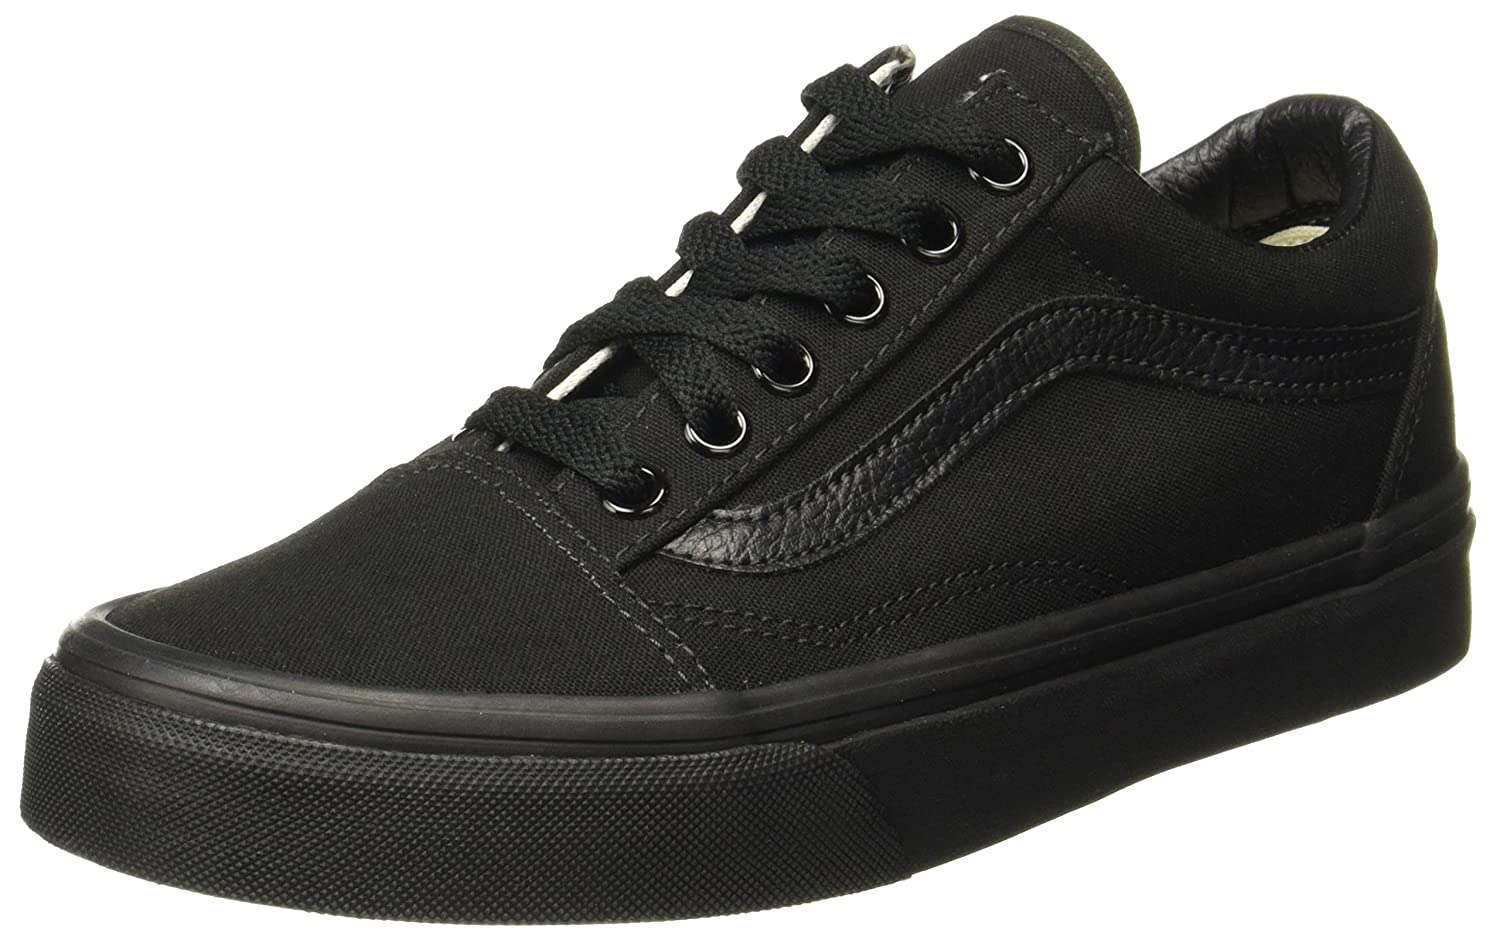 Vans Unisex Old Skool Classic Skate Shoes B07B79SWZ5 38 M EU / 7.5 B(M) US Women / 6 D(M) US Men|Black/Black